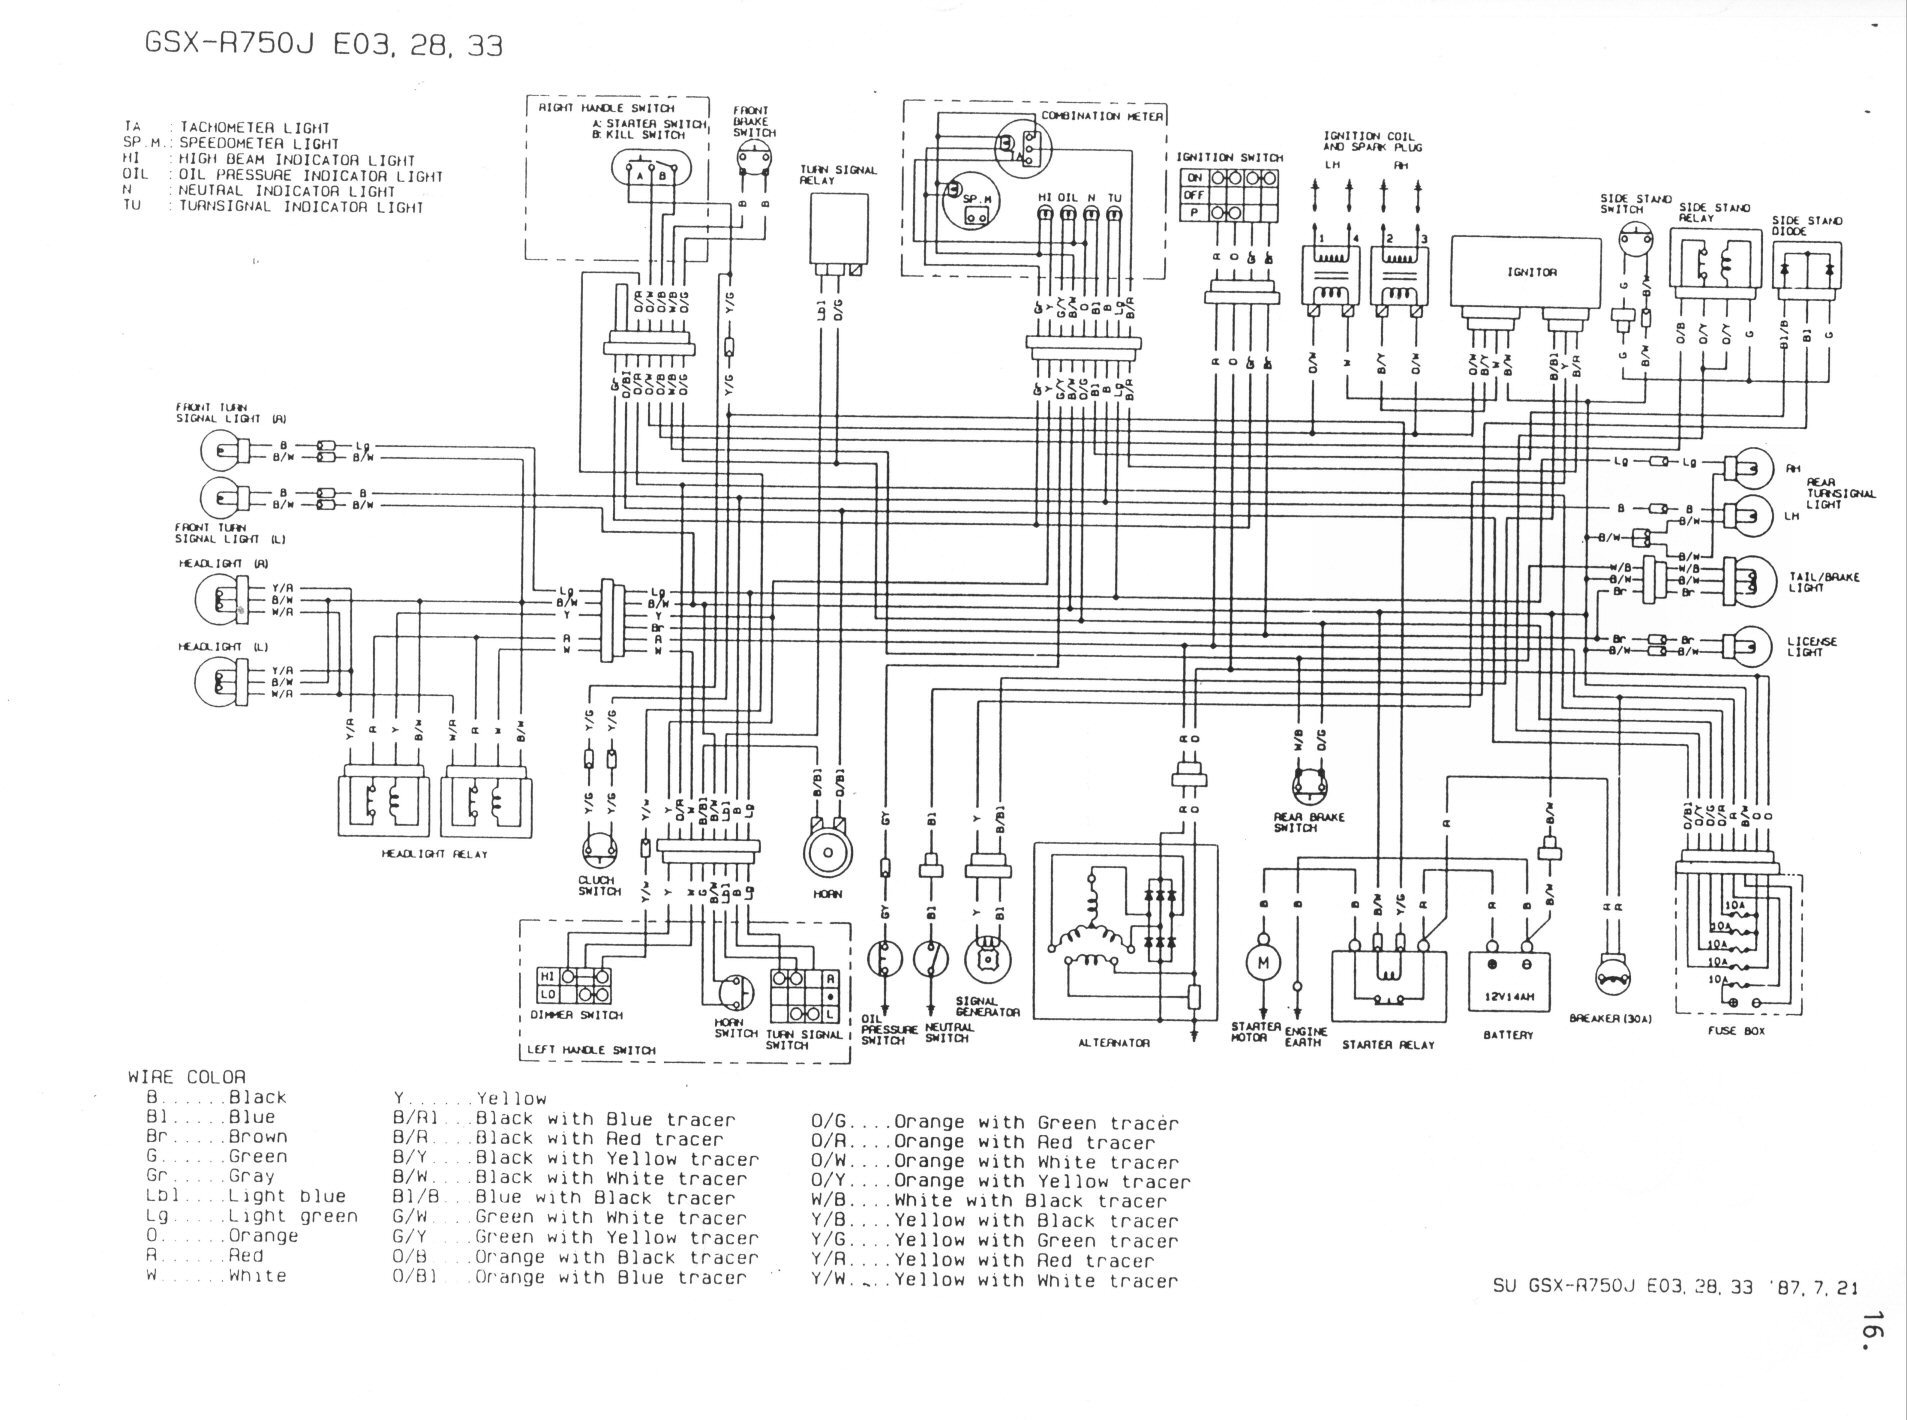 suzuki gsx 750 f wiring diagram corn plant life cycle 2004 gsxr 1000 free engine image for